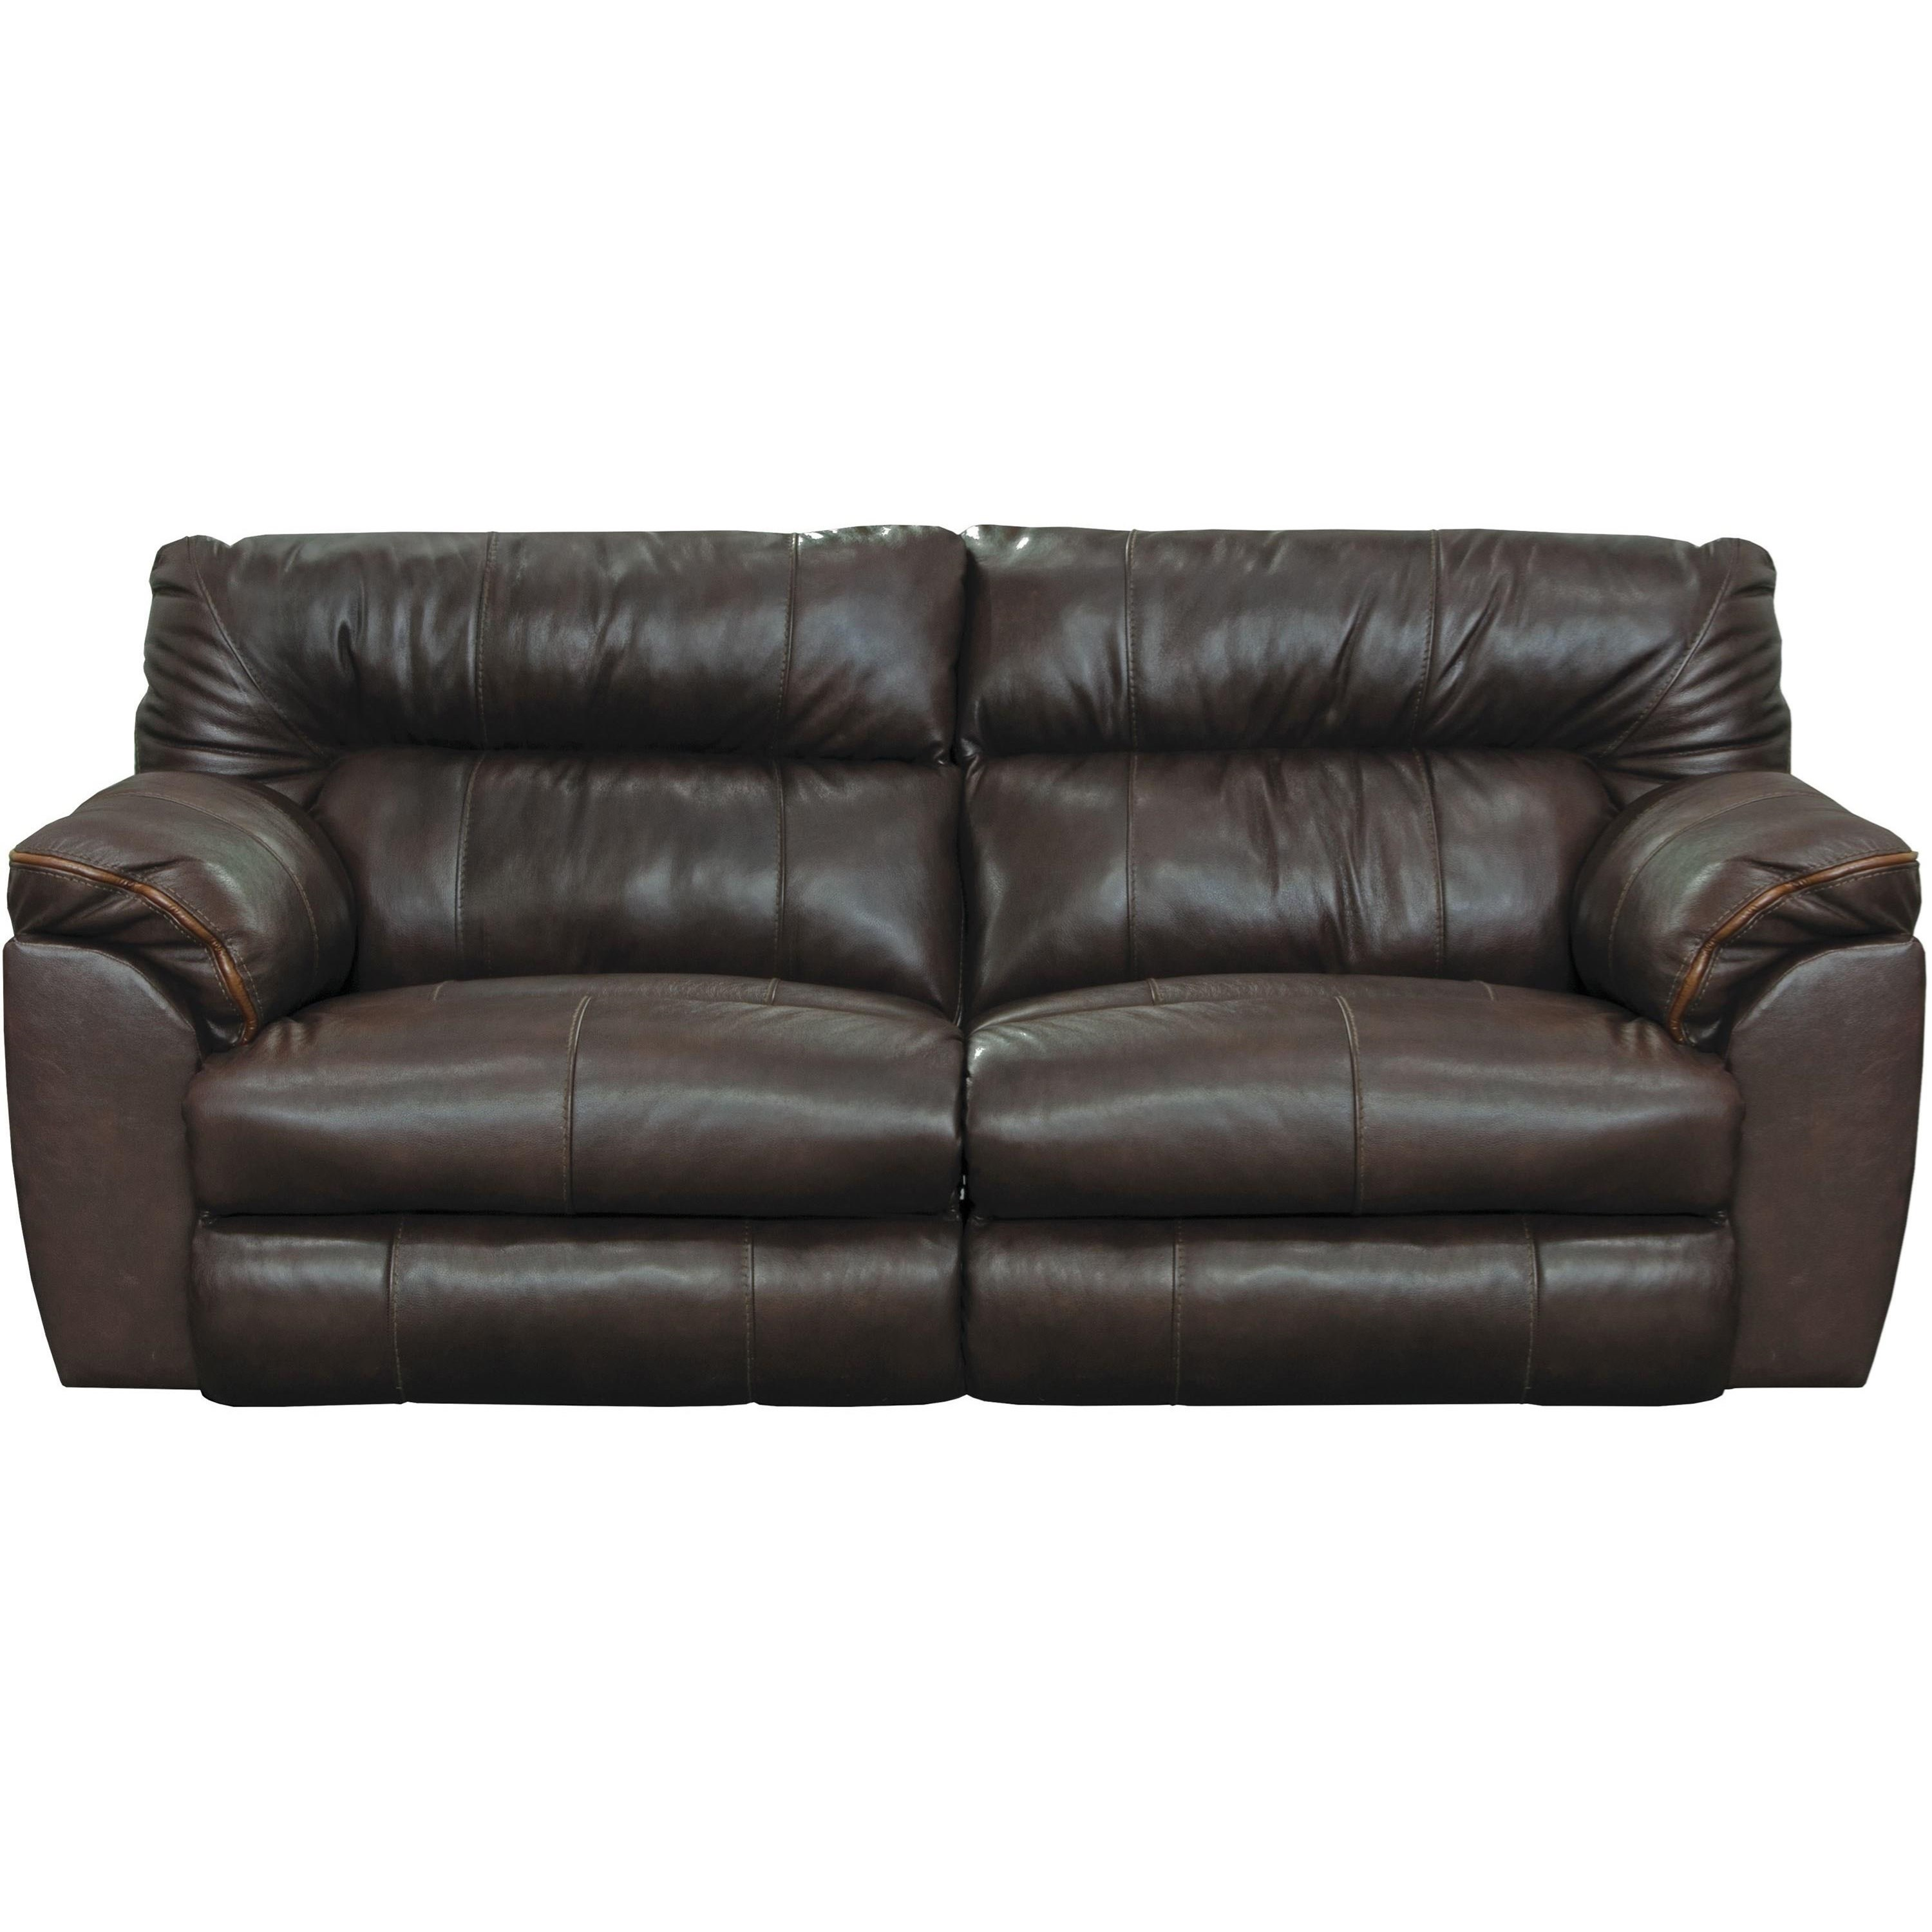 Milan Power Lay Flat Reclining Sofa by Catnapper at Northeast Factory Direct